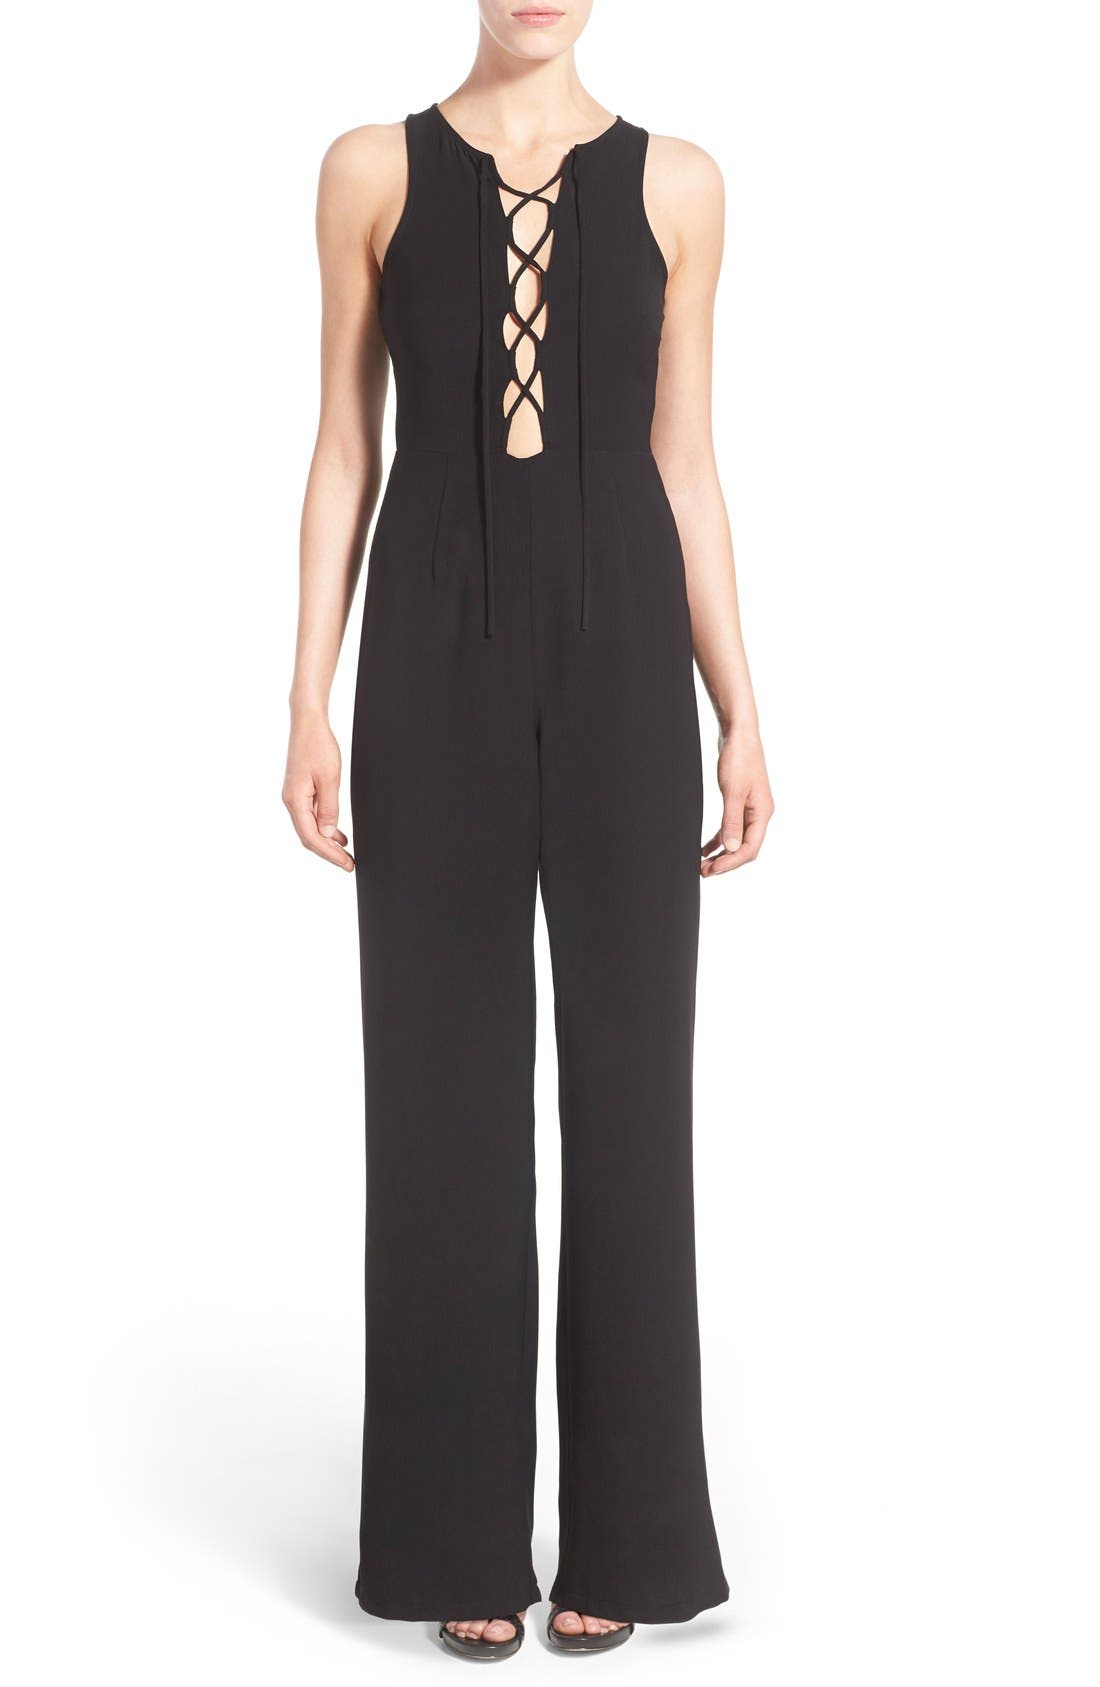 MISSGUIDED, Lace-Up Front Jumpsuit, Main thumbnail 1, color, 001